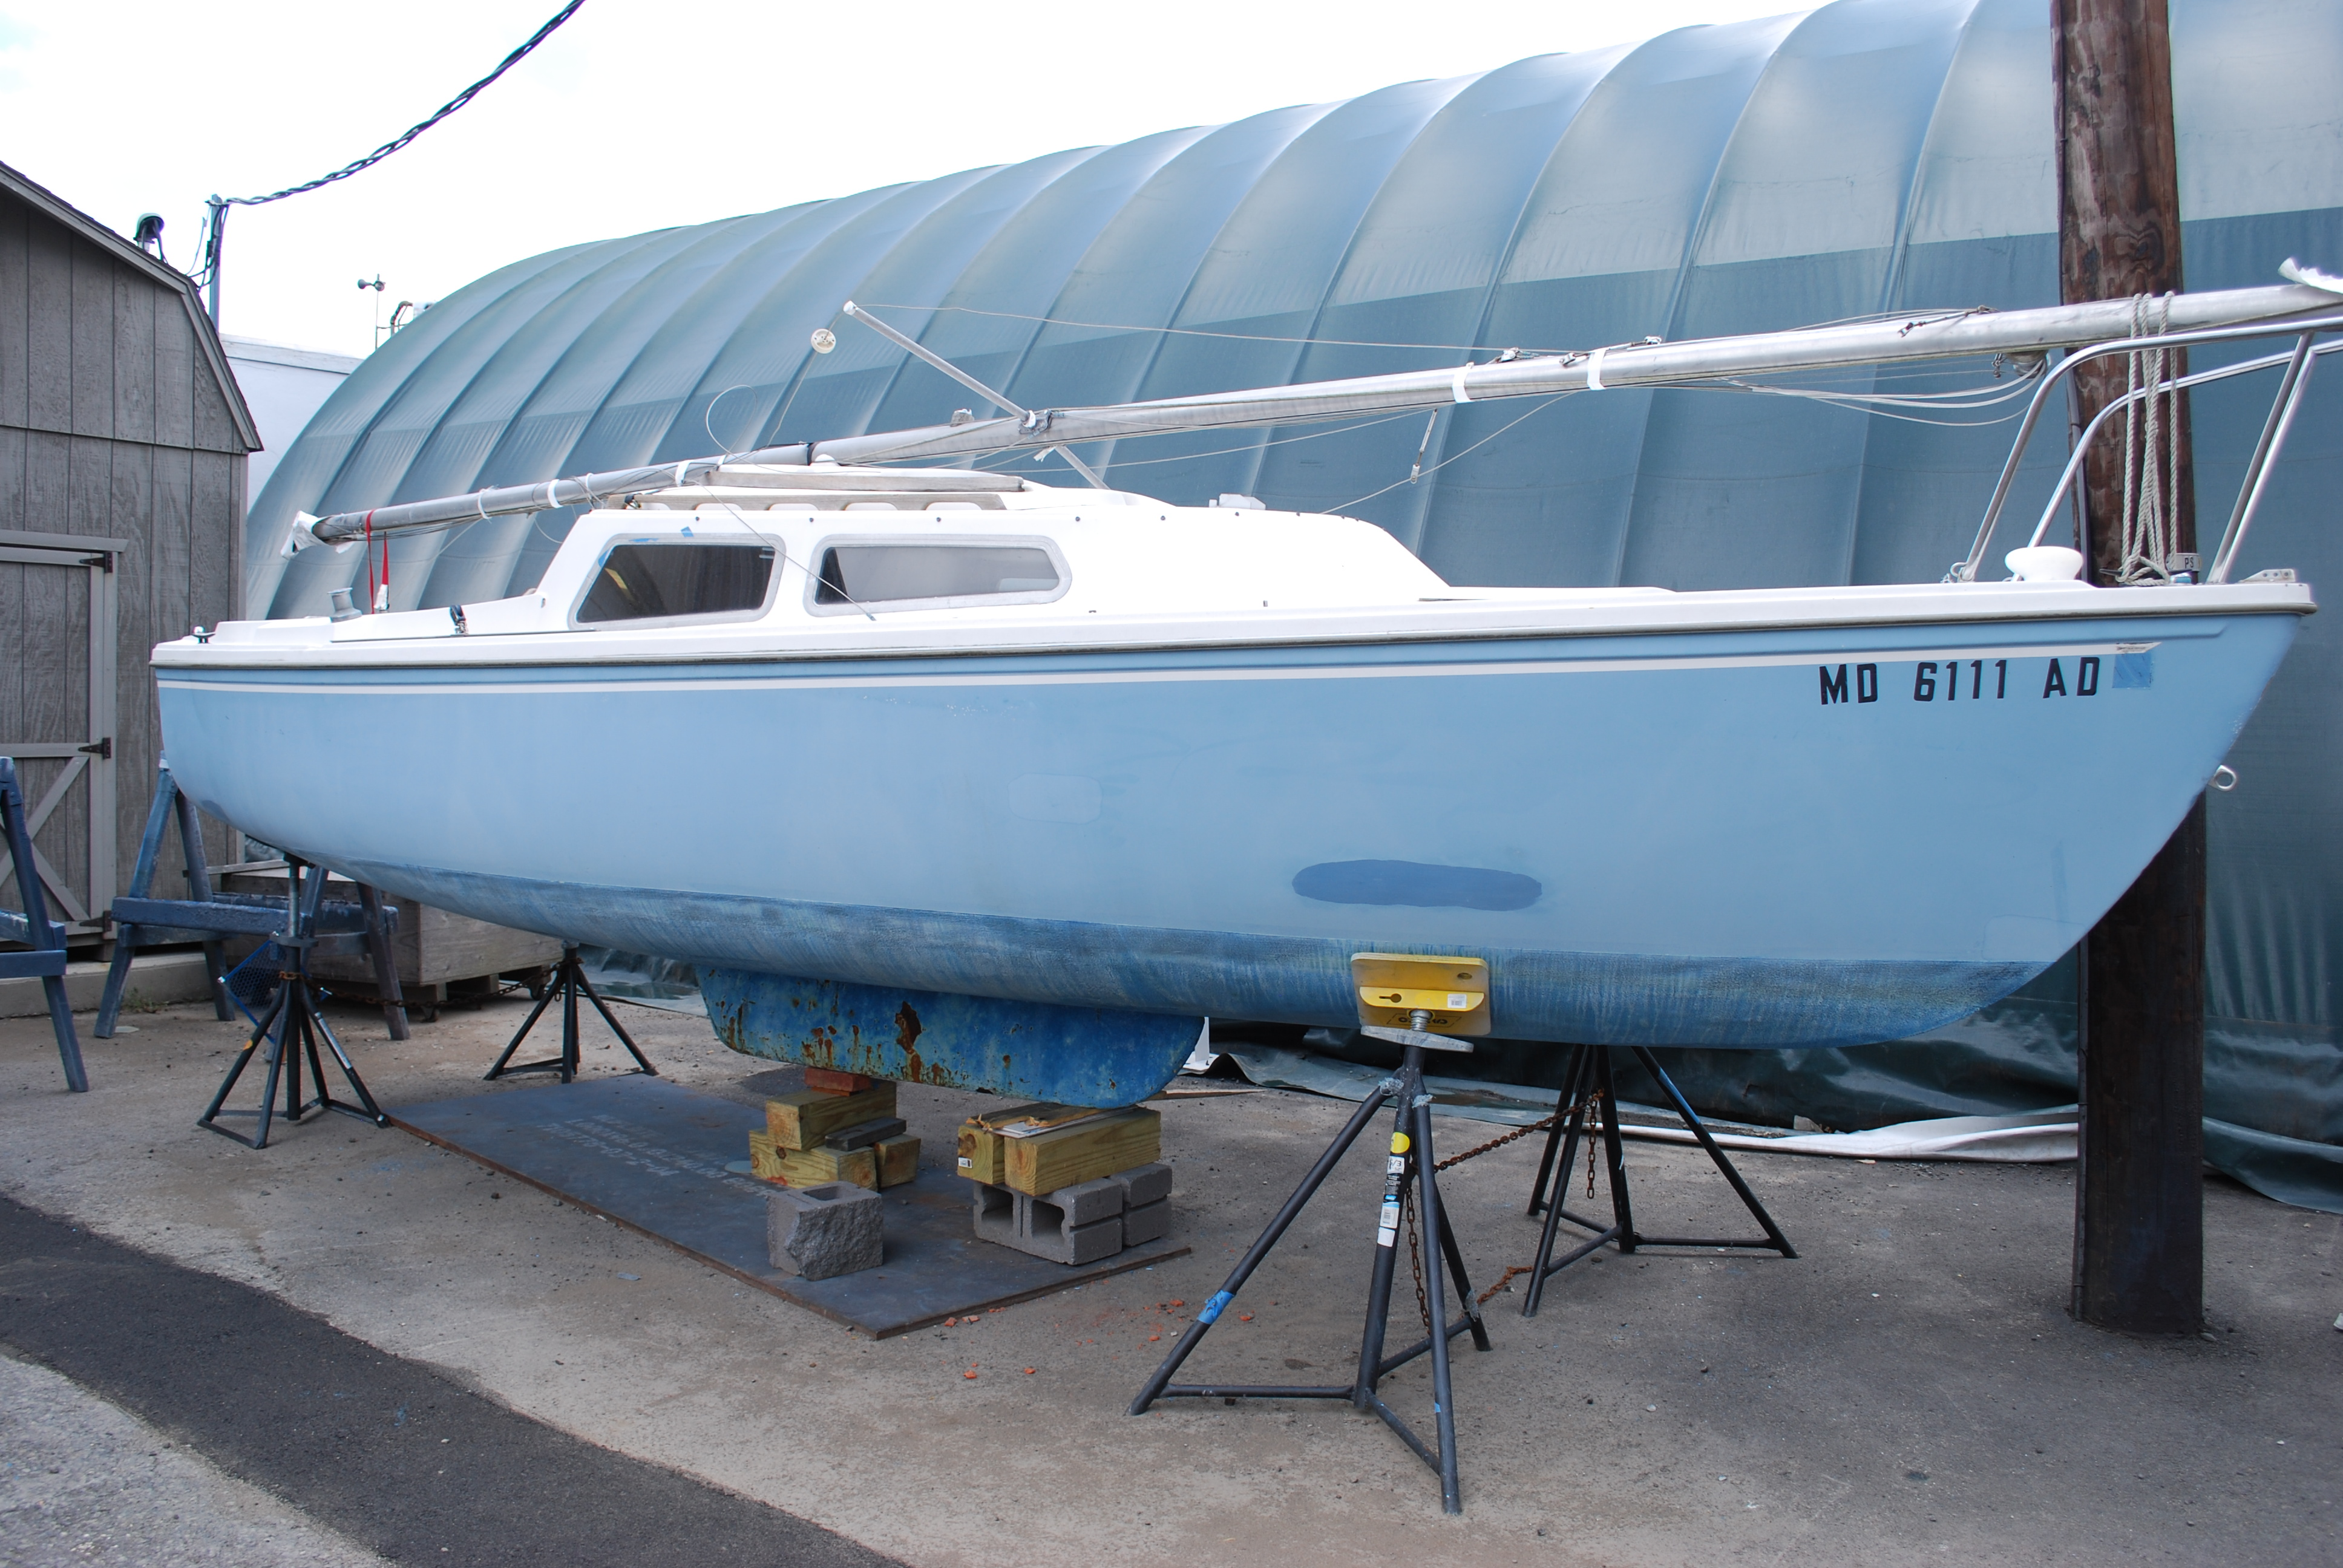 The company acquired a Catalina 22 in need of serious restoration and ...